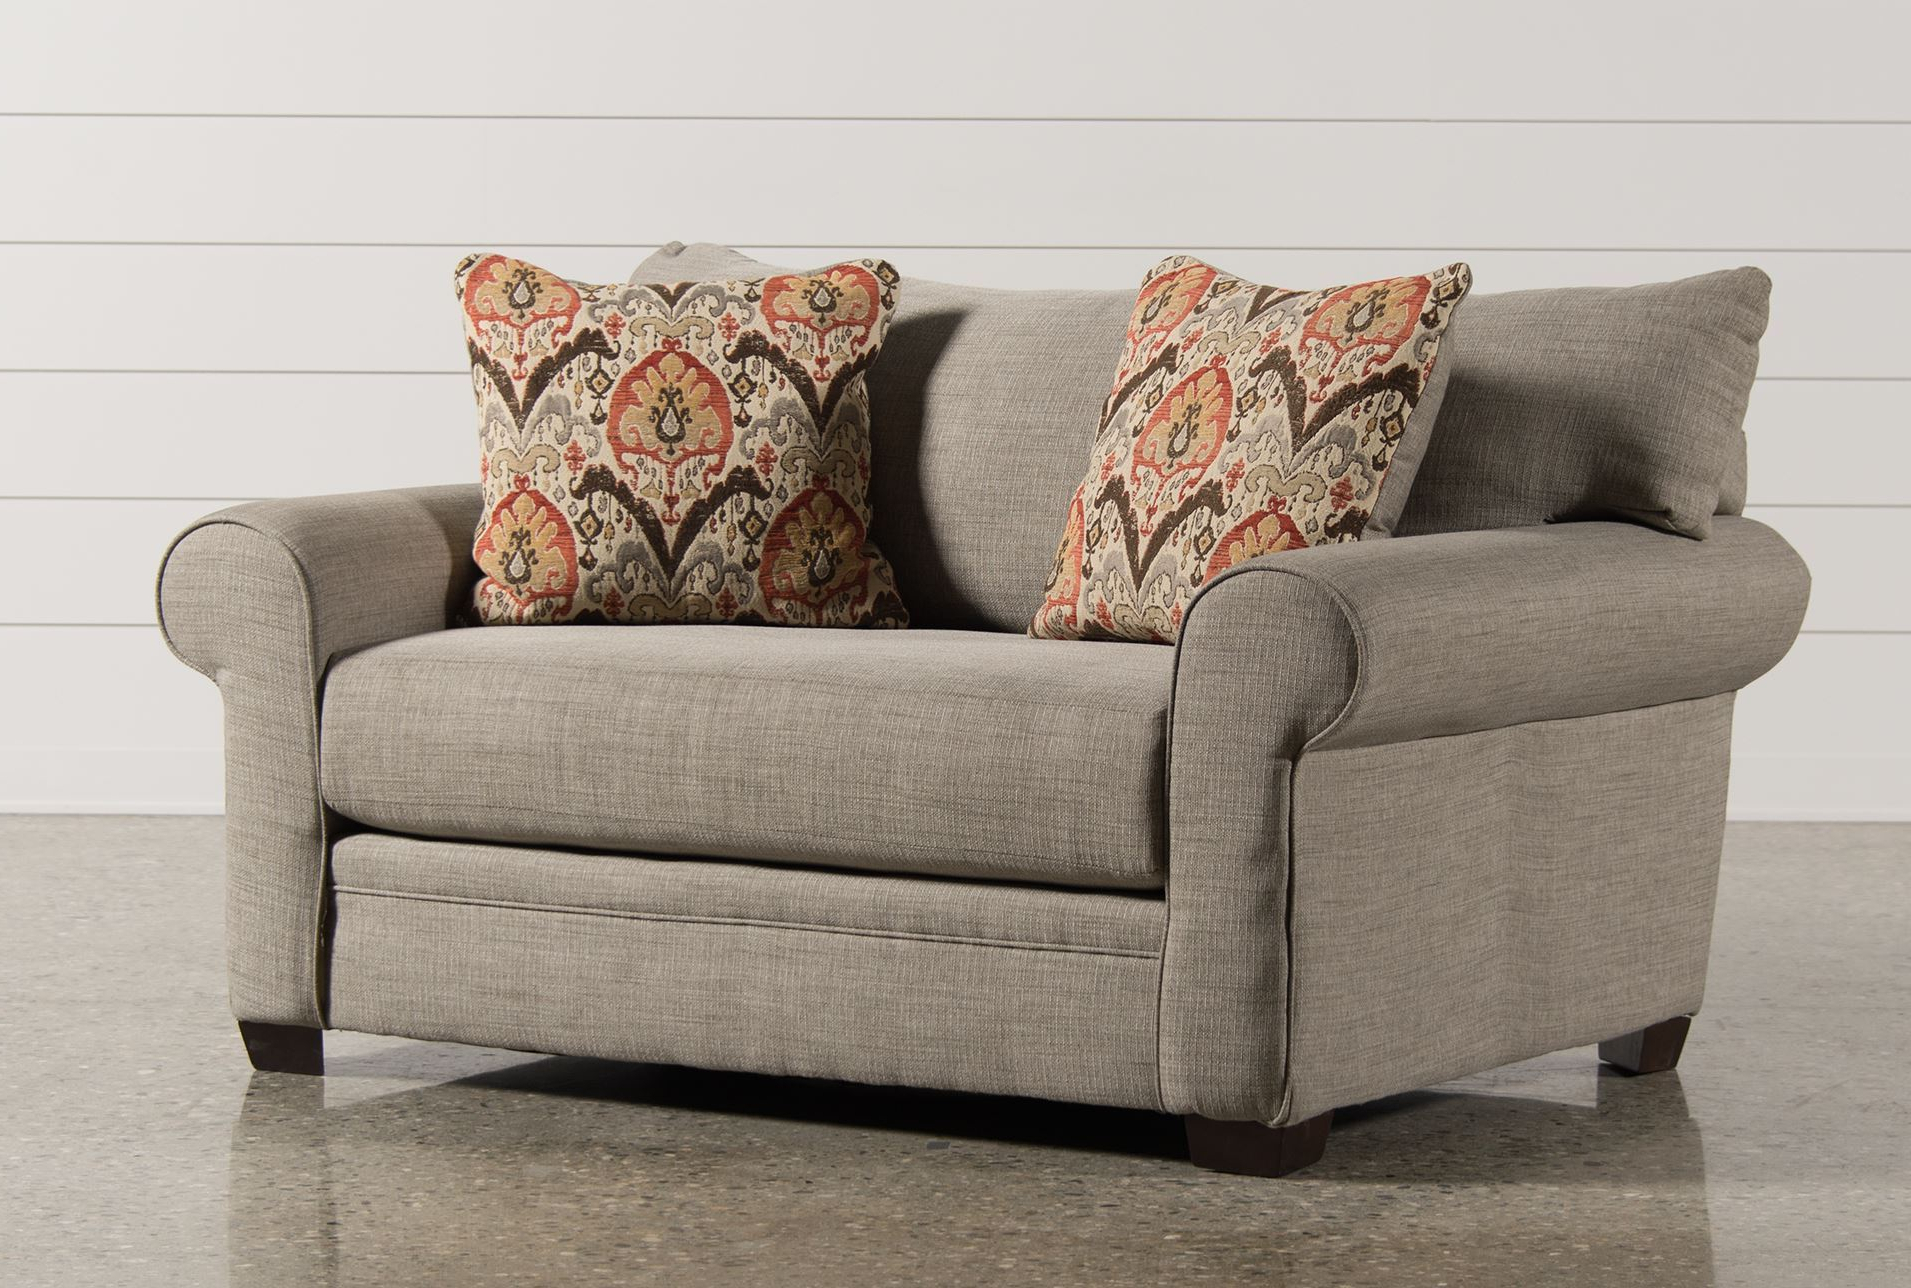 Sofa Chairs For Well Known Awesome Sofas And Chairs 20 On Sofas And Couches Set With Sofas And (View 14 of 20)